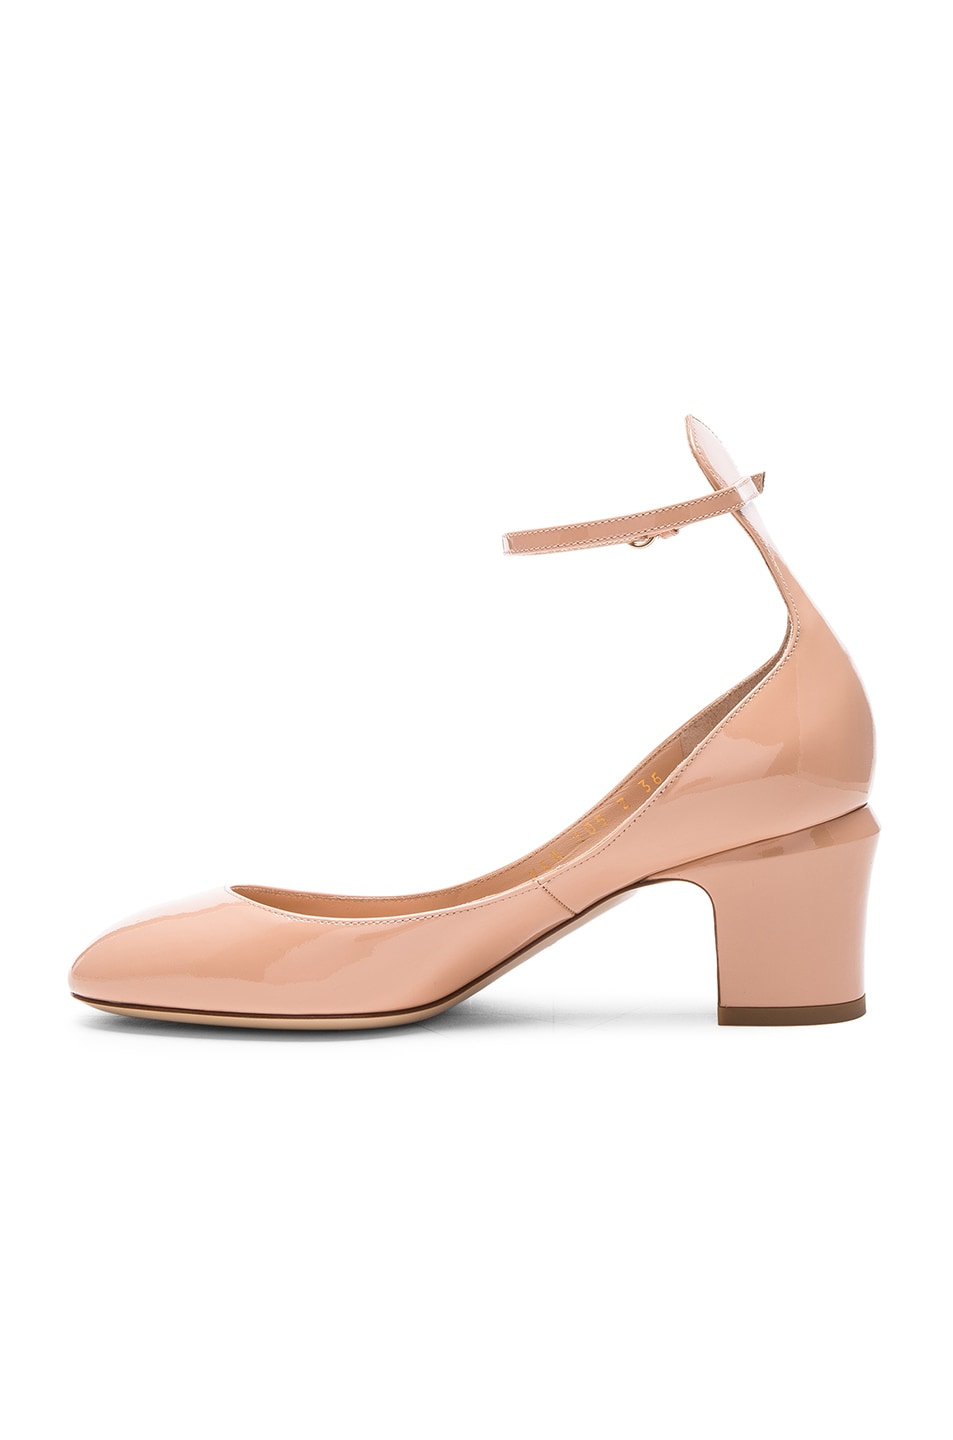 Image 5 of Valentino Patent Leather Tan-Go Pumps in Nude